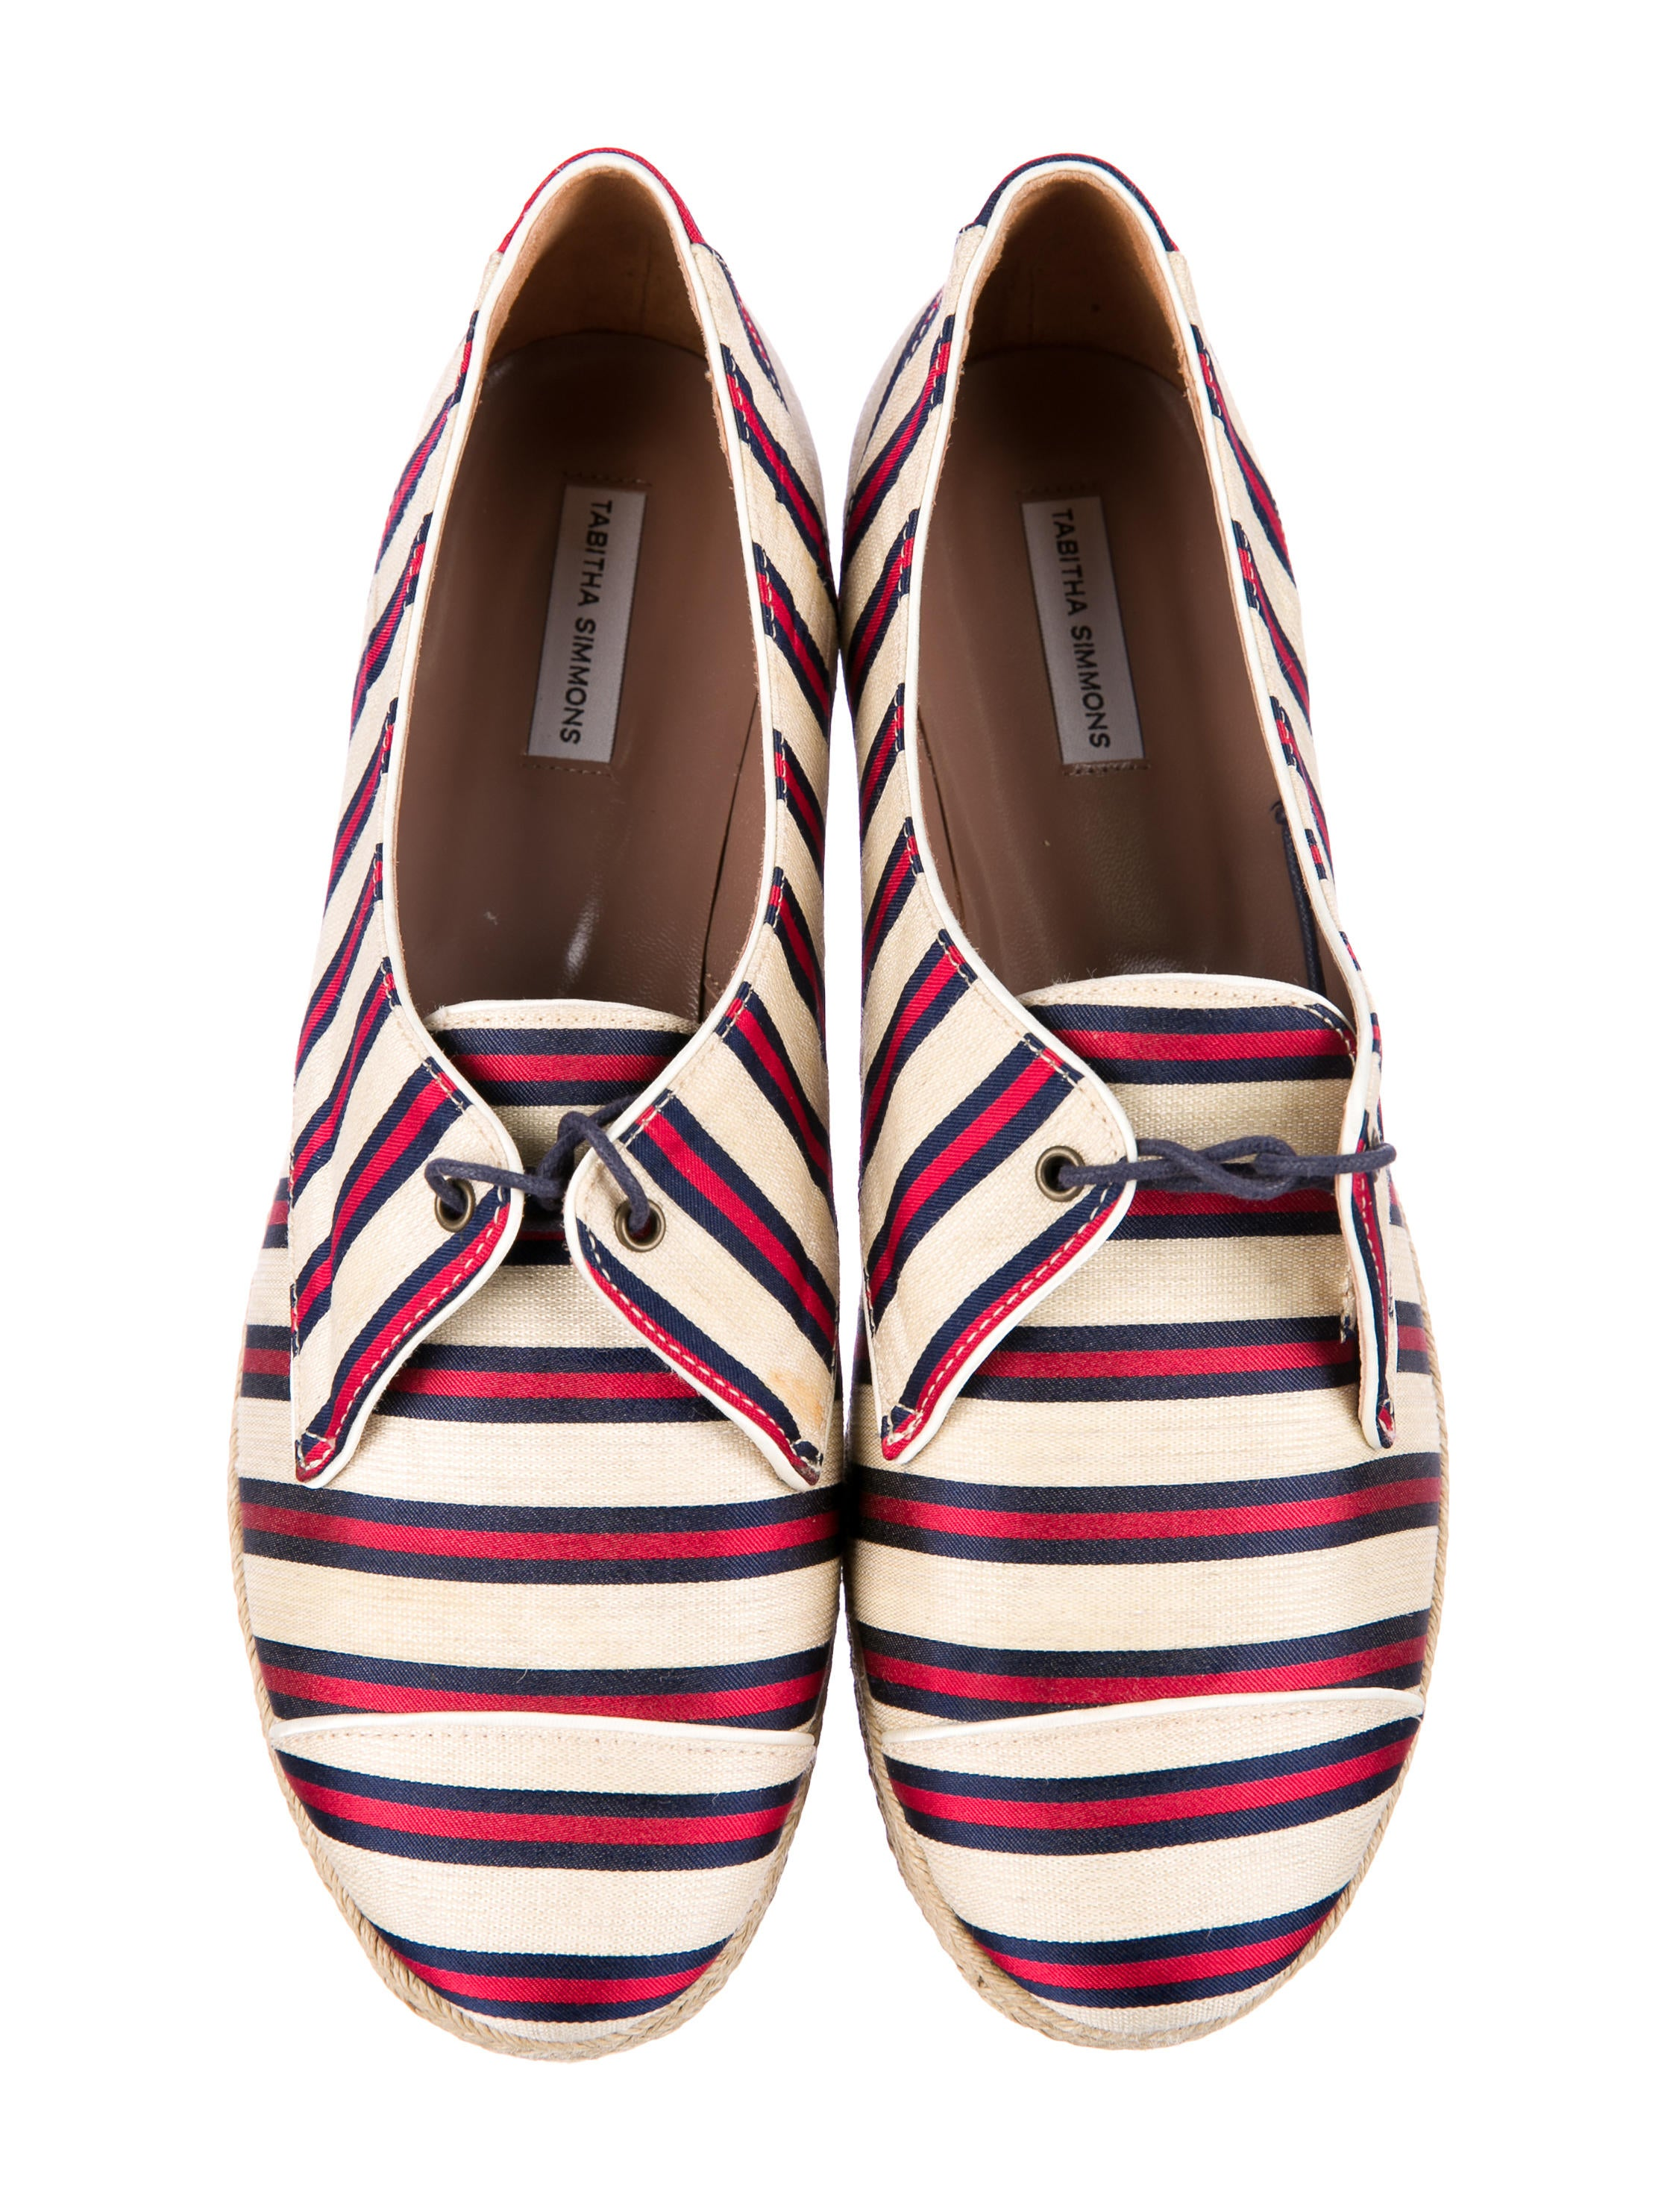 sale newest Tabitha Simmons Striped Flatform Sneakers outlet clearance tYE1vJr